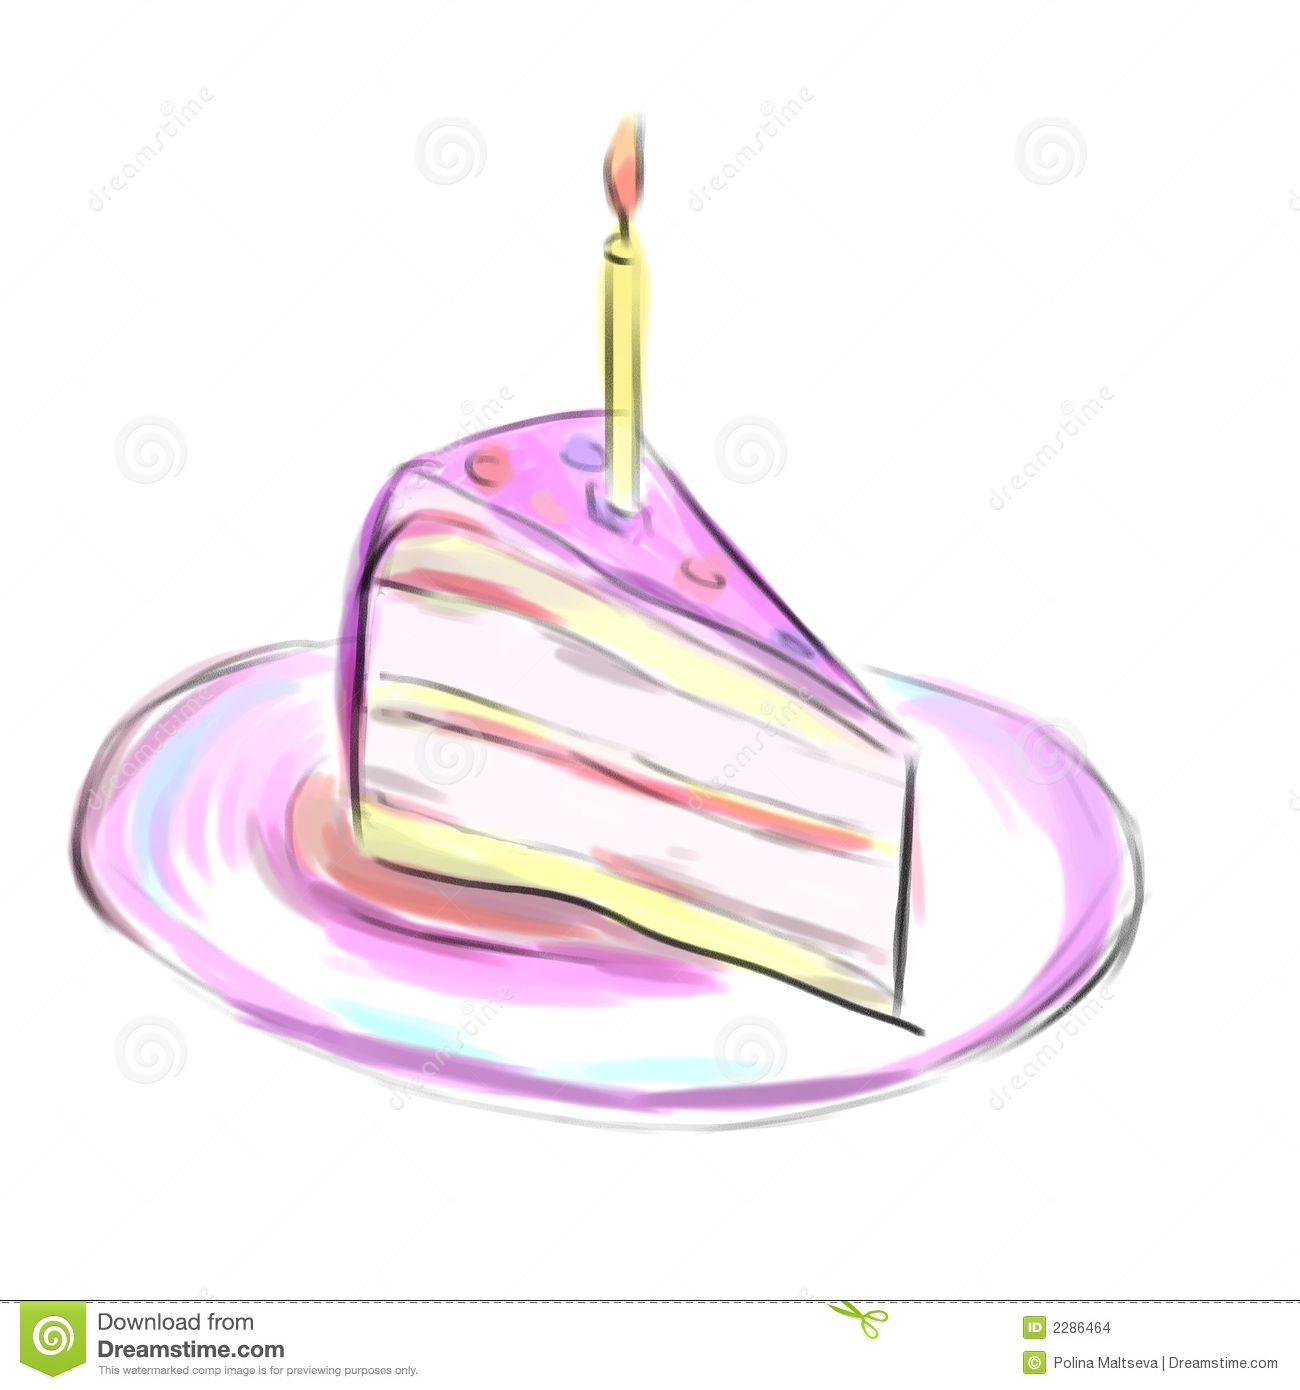 Stuck Einer Torte Stock Abbildung Illustration Von Celebrate 2286464